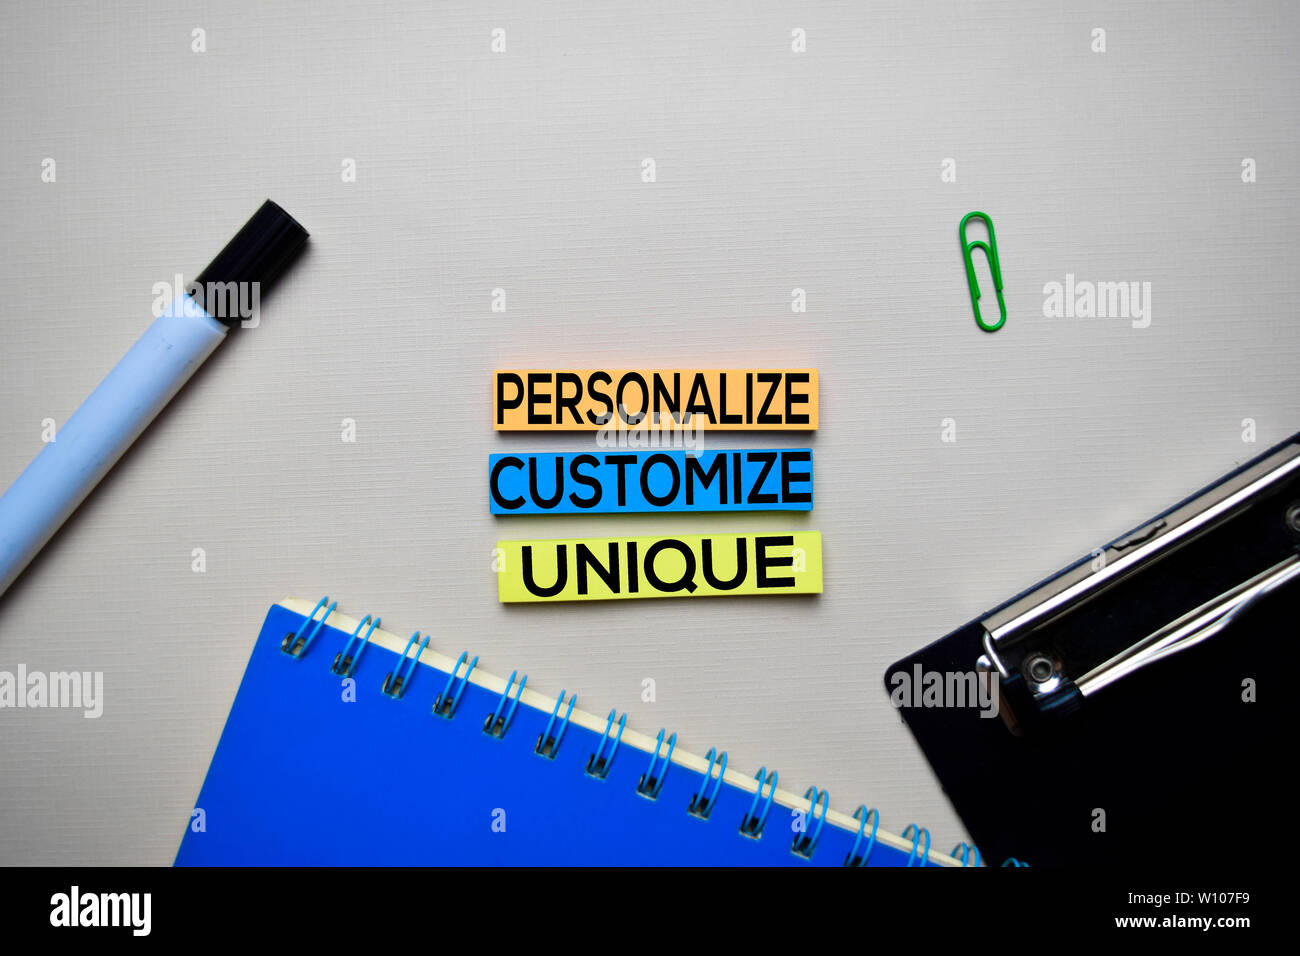 Personalize - Customize - Unique text on sticky notes with office desk concept - Stock Image